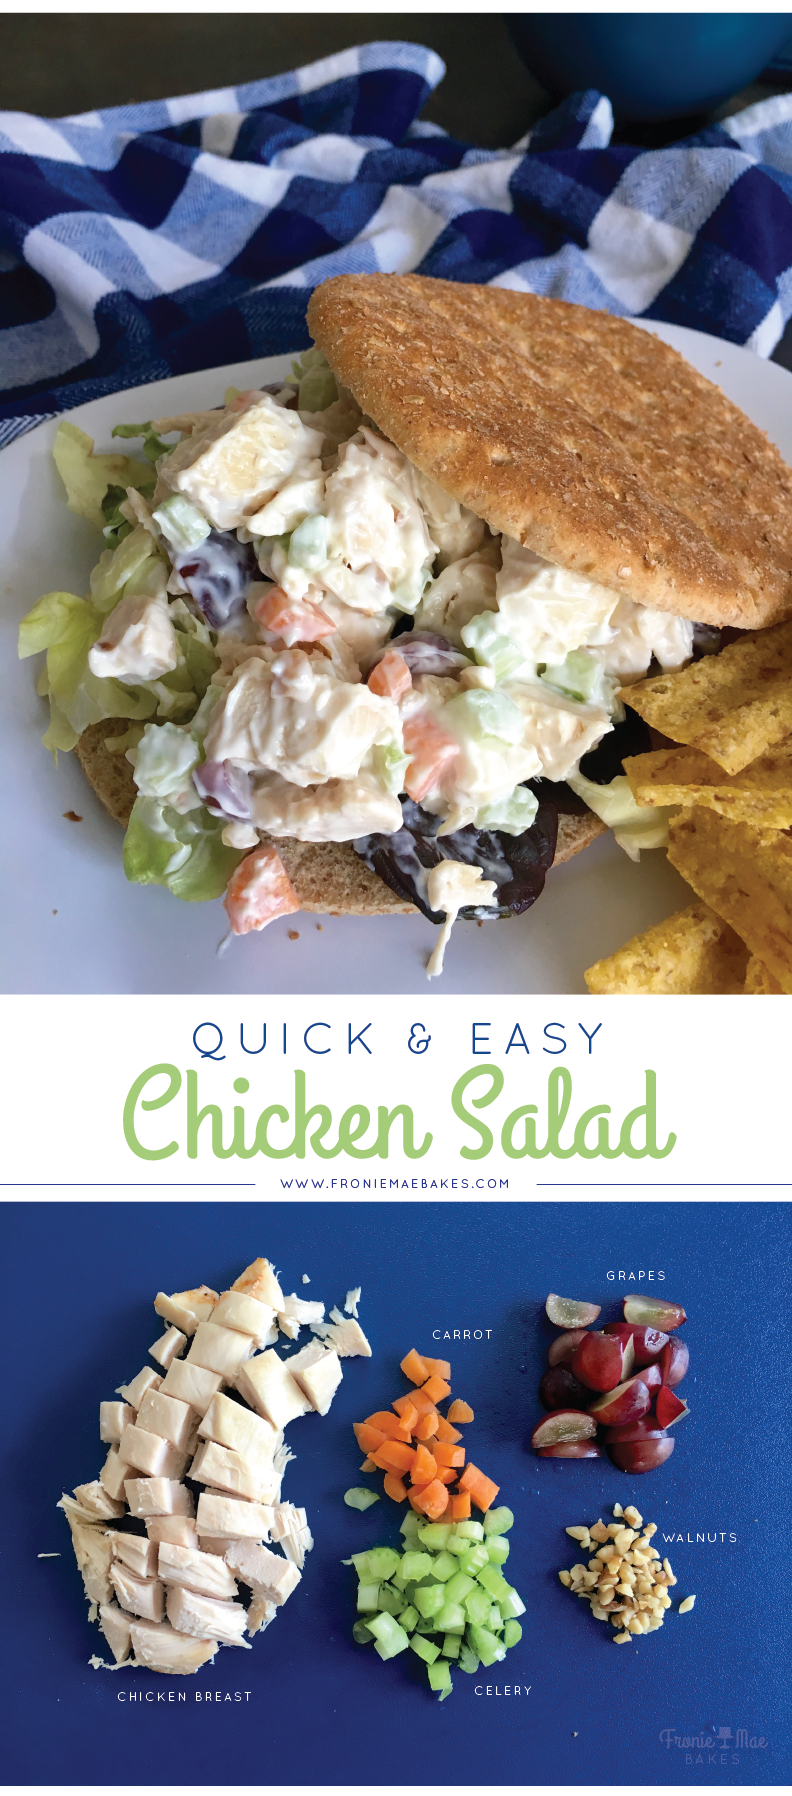 Quick and Easy Chicken Salad by Fronie Mae Bakes. www.froniemaebakes.com